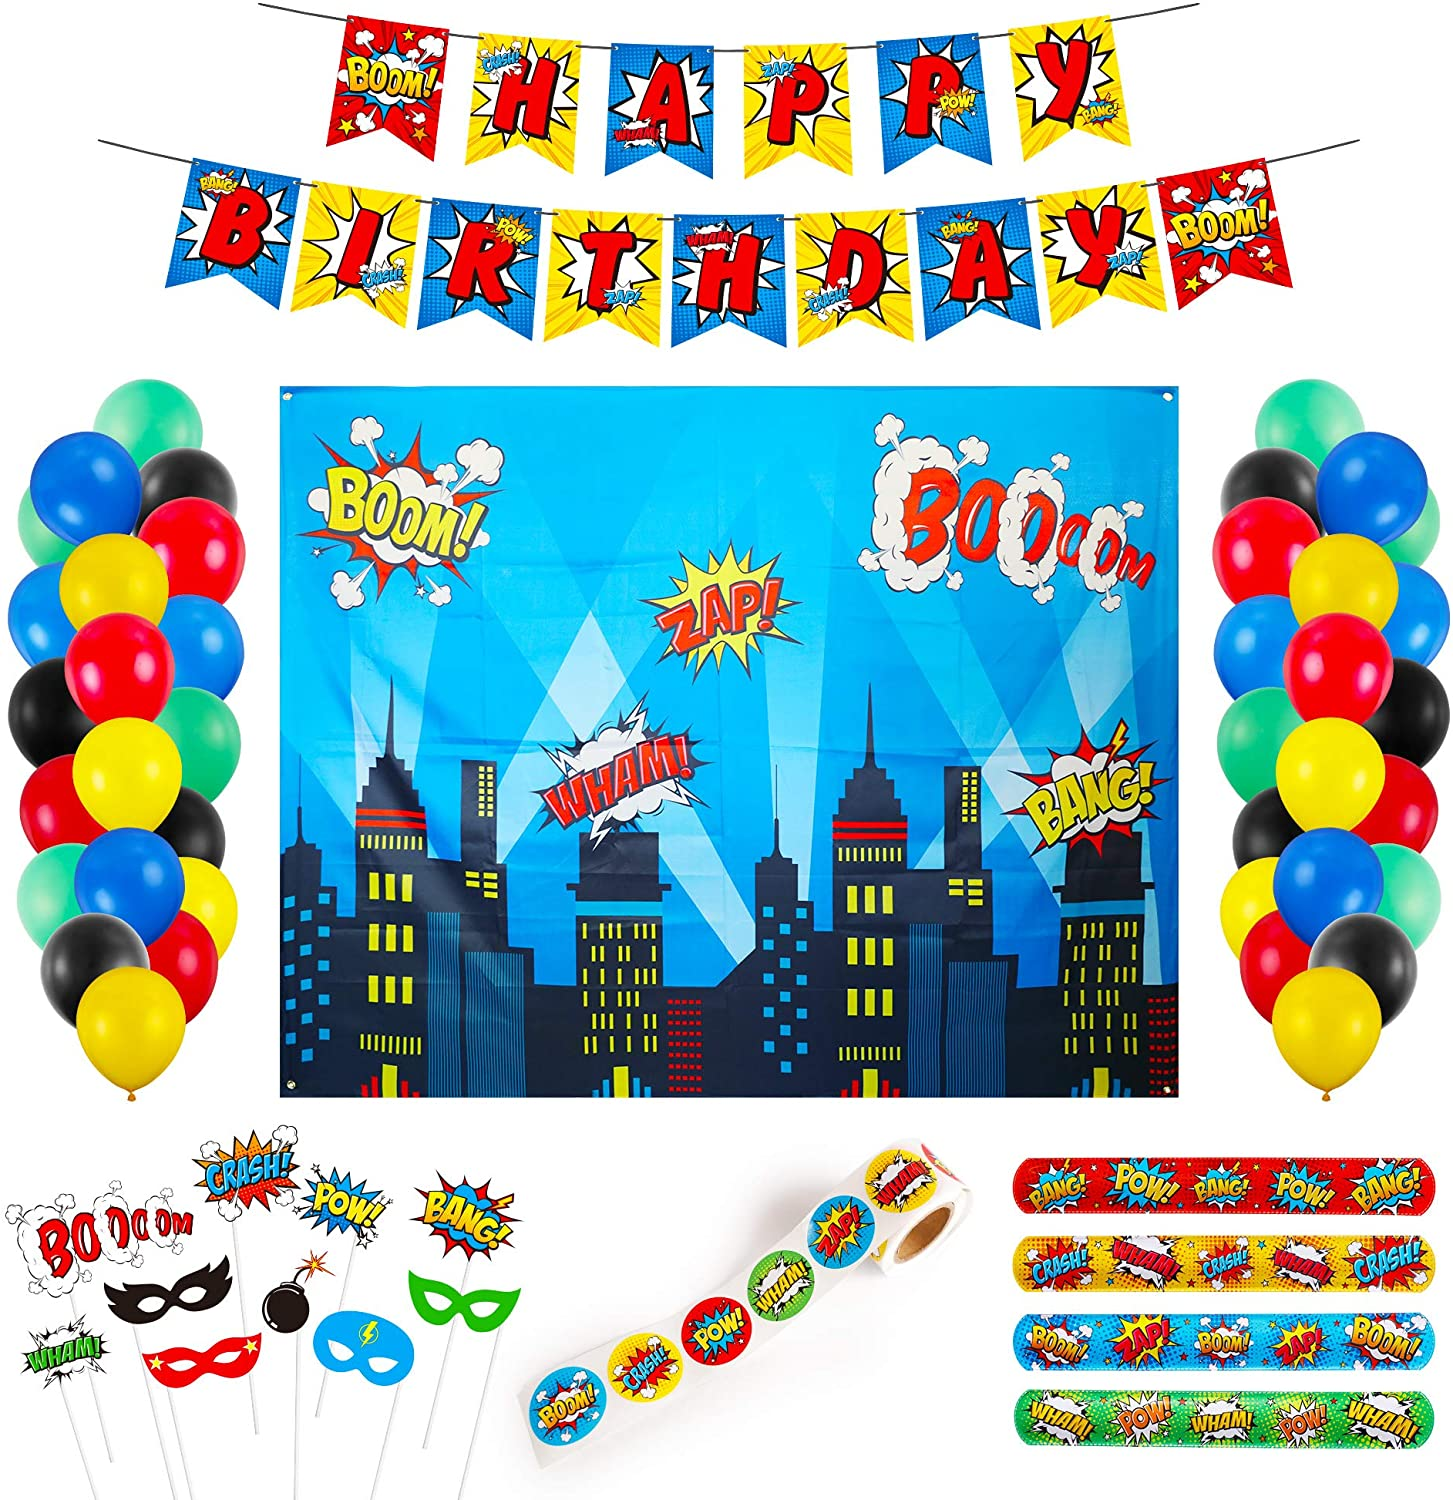 Decorlife Superhero Party Supplies, Birthday Party Decorations for Kids, Total 89PCS, Including Slap Bracelets, 6.4 x 4.9ft Superhero Backdrop, Stickers, Photo Booth Props, Happy Birthday Banner, Latex Balloons